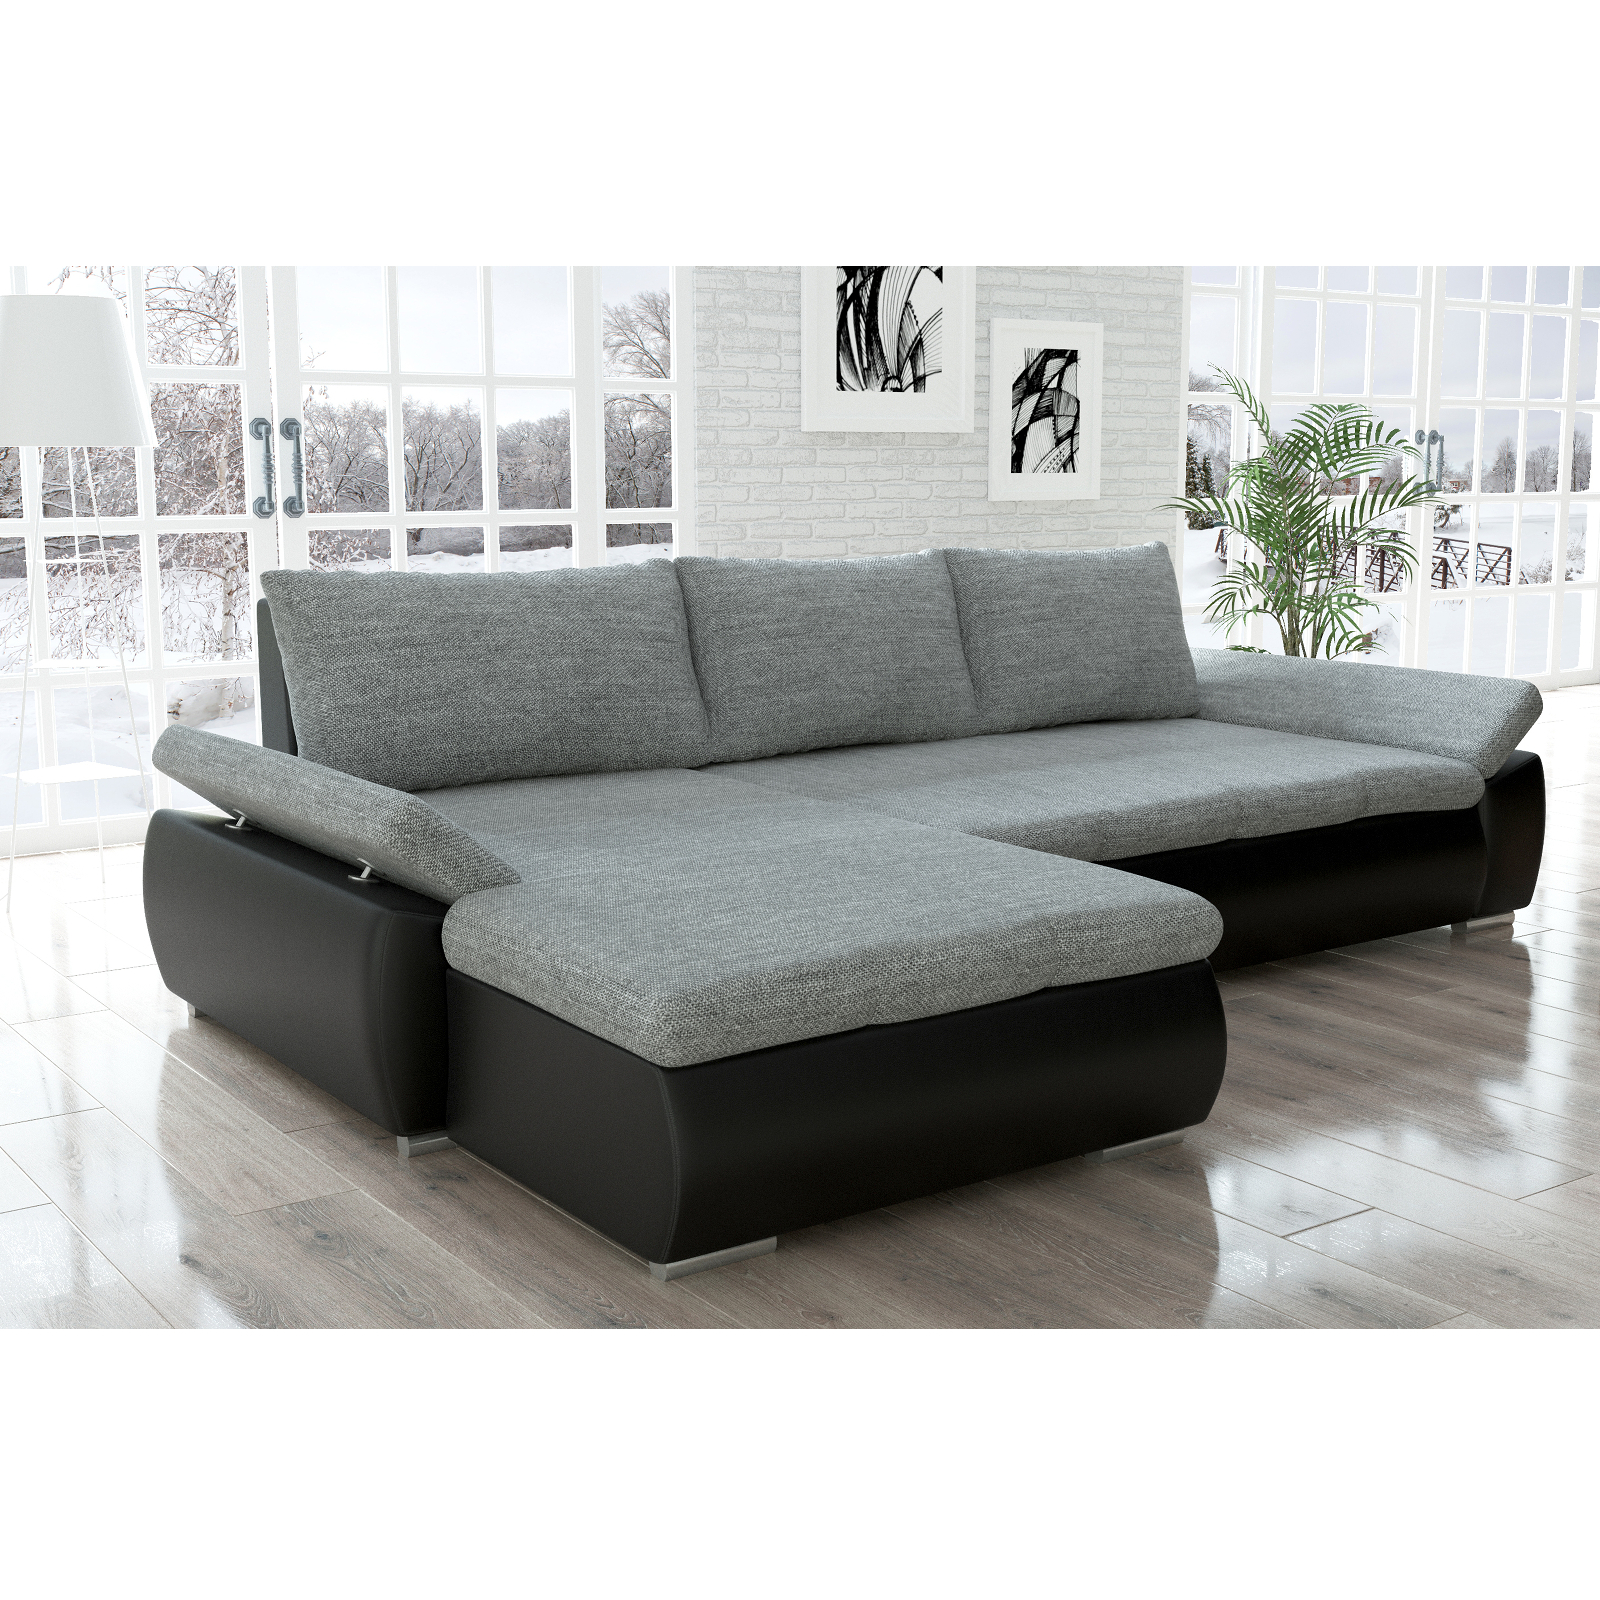 sofa kreta schwarz grau ecksofa von jalano schlafsofa l form schlafcouch ebay. Black Bedroom Furniture Sets. Home Design Ideas